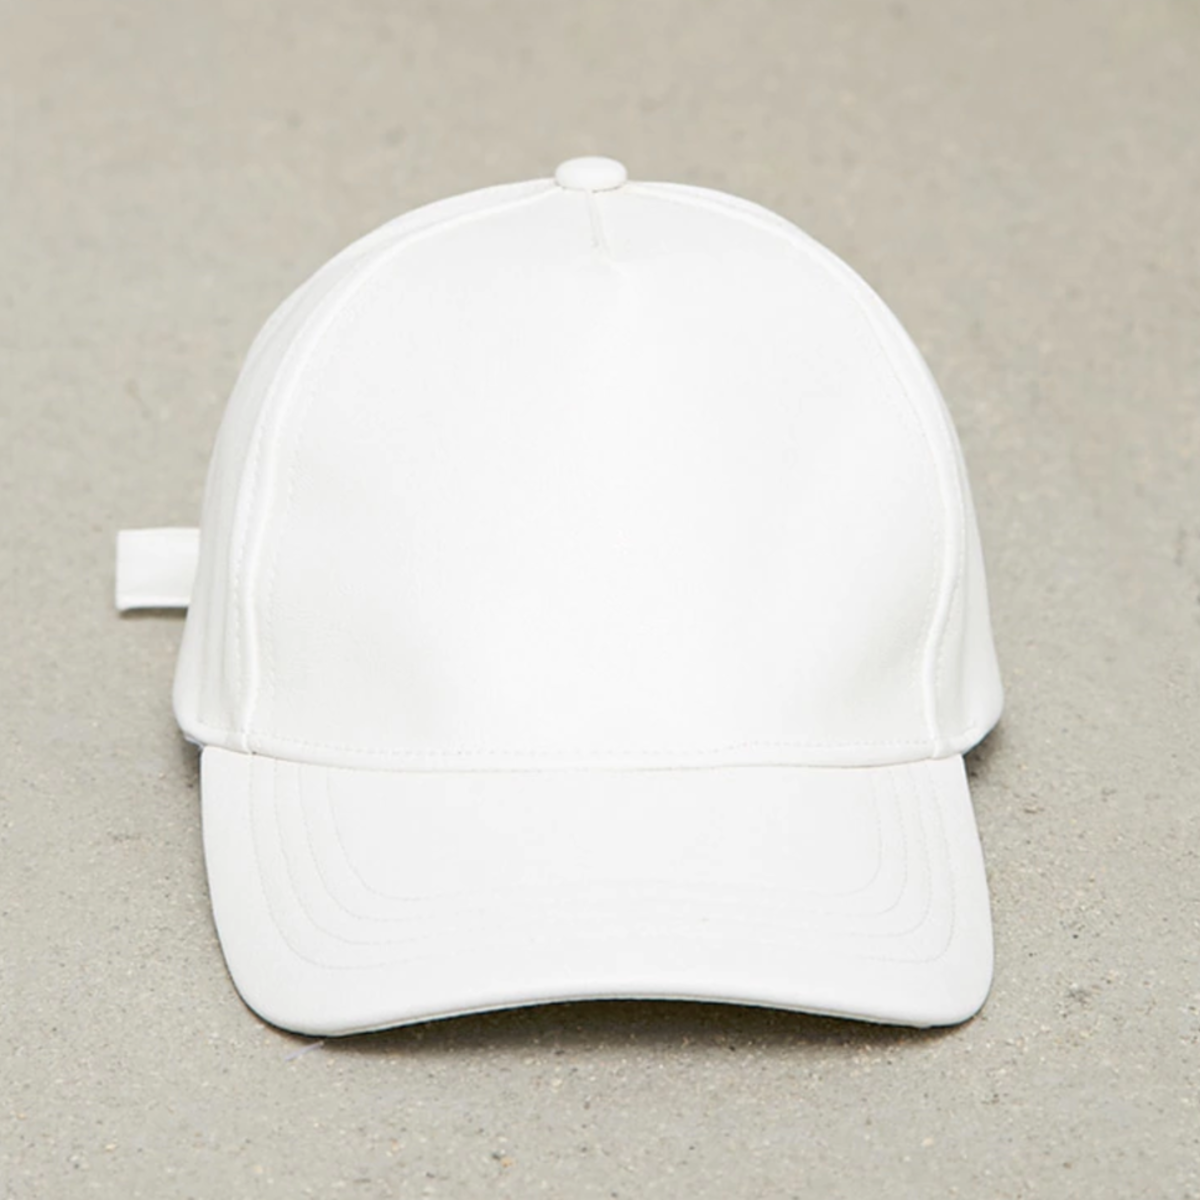 Shop the Item: Faux Leather Baseball Cap ($10) - This simple cap will also be accompanying me to dance class